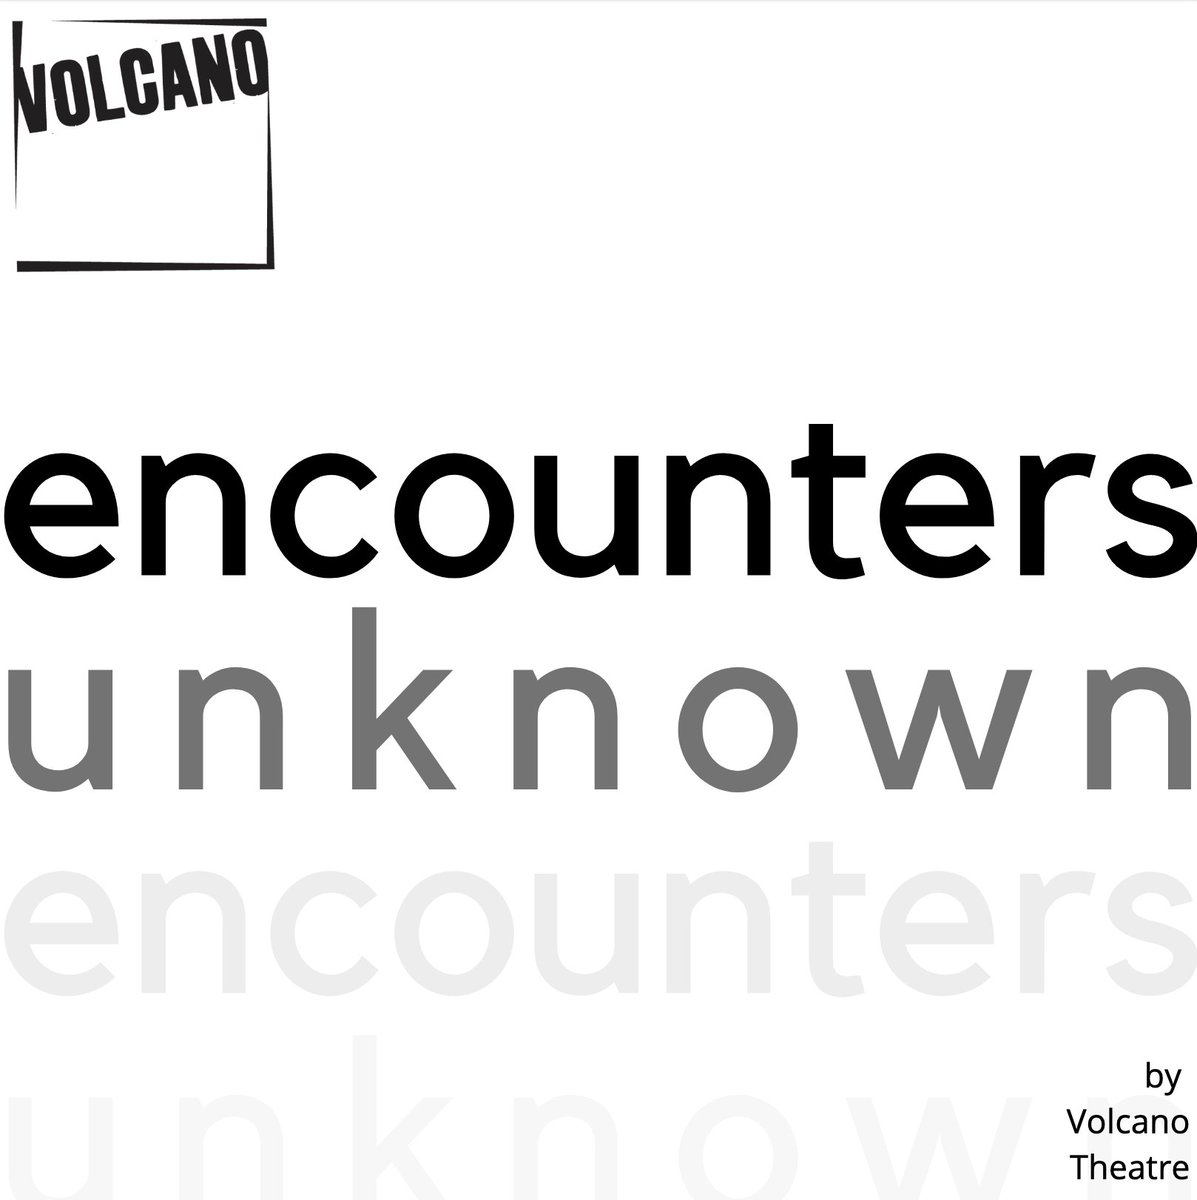 Volcano Newsletter - Introducing Encounters Unknown - mailchi.mp/1b673f785567/v…